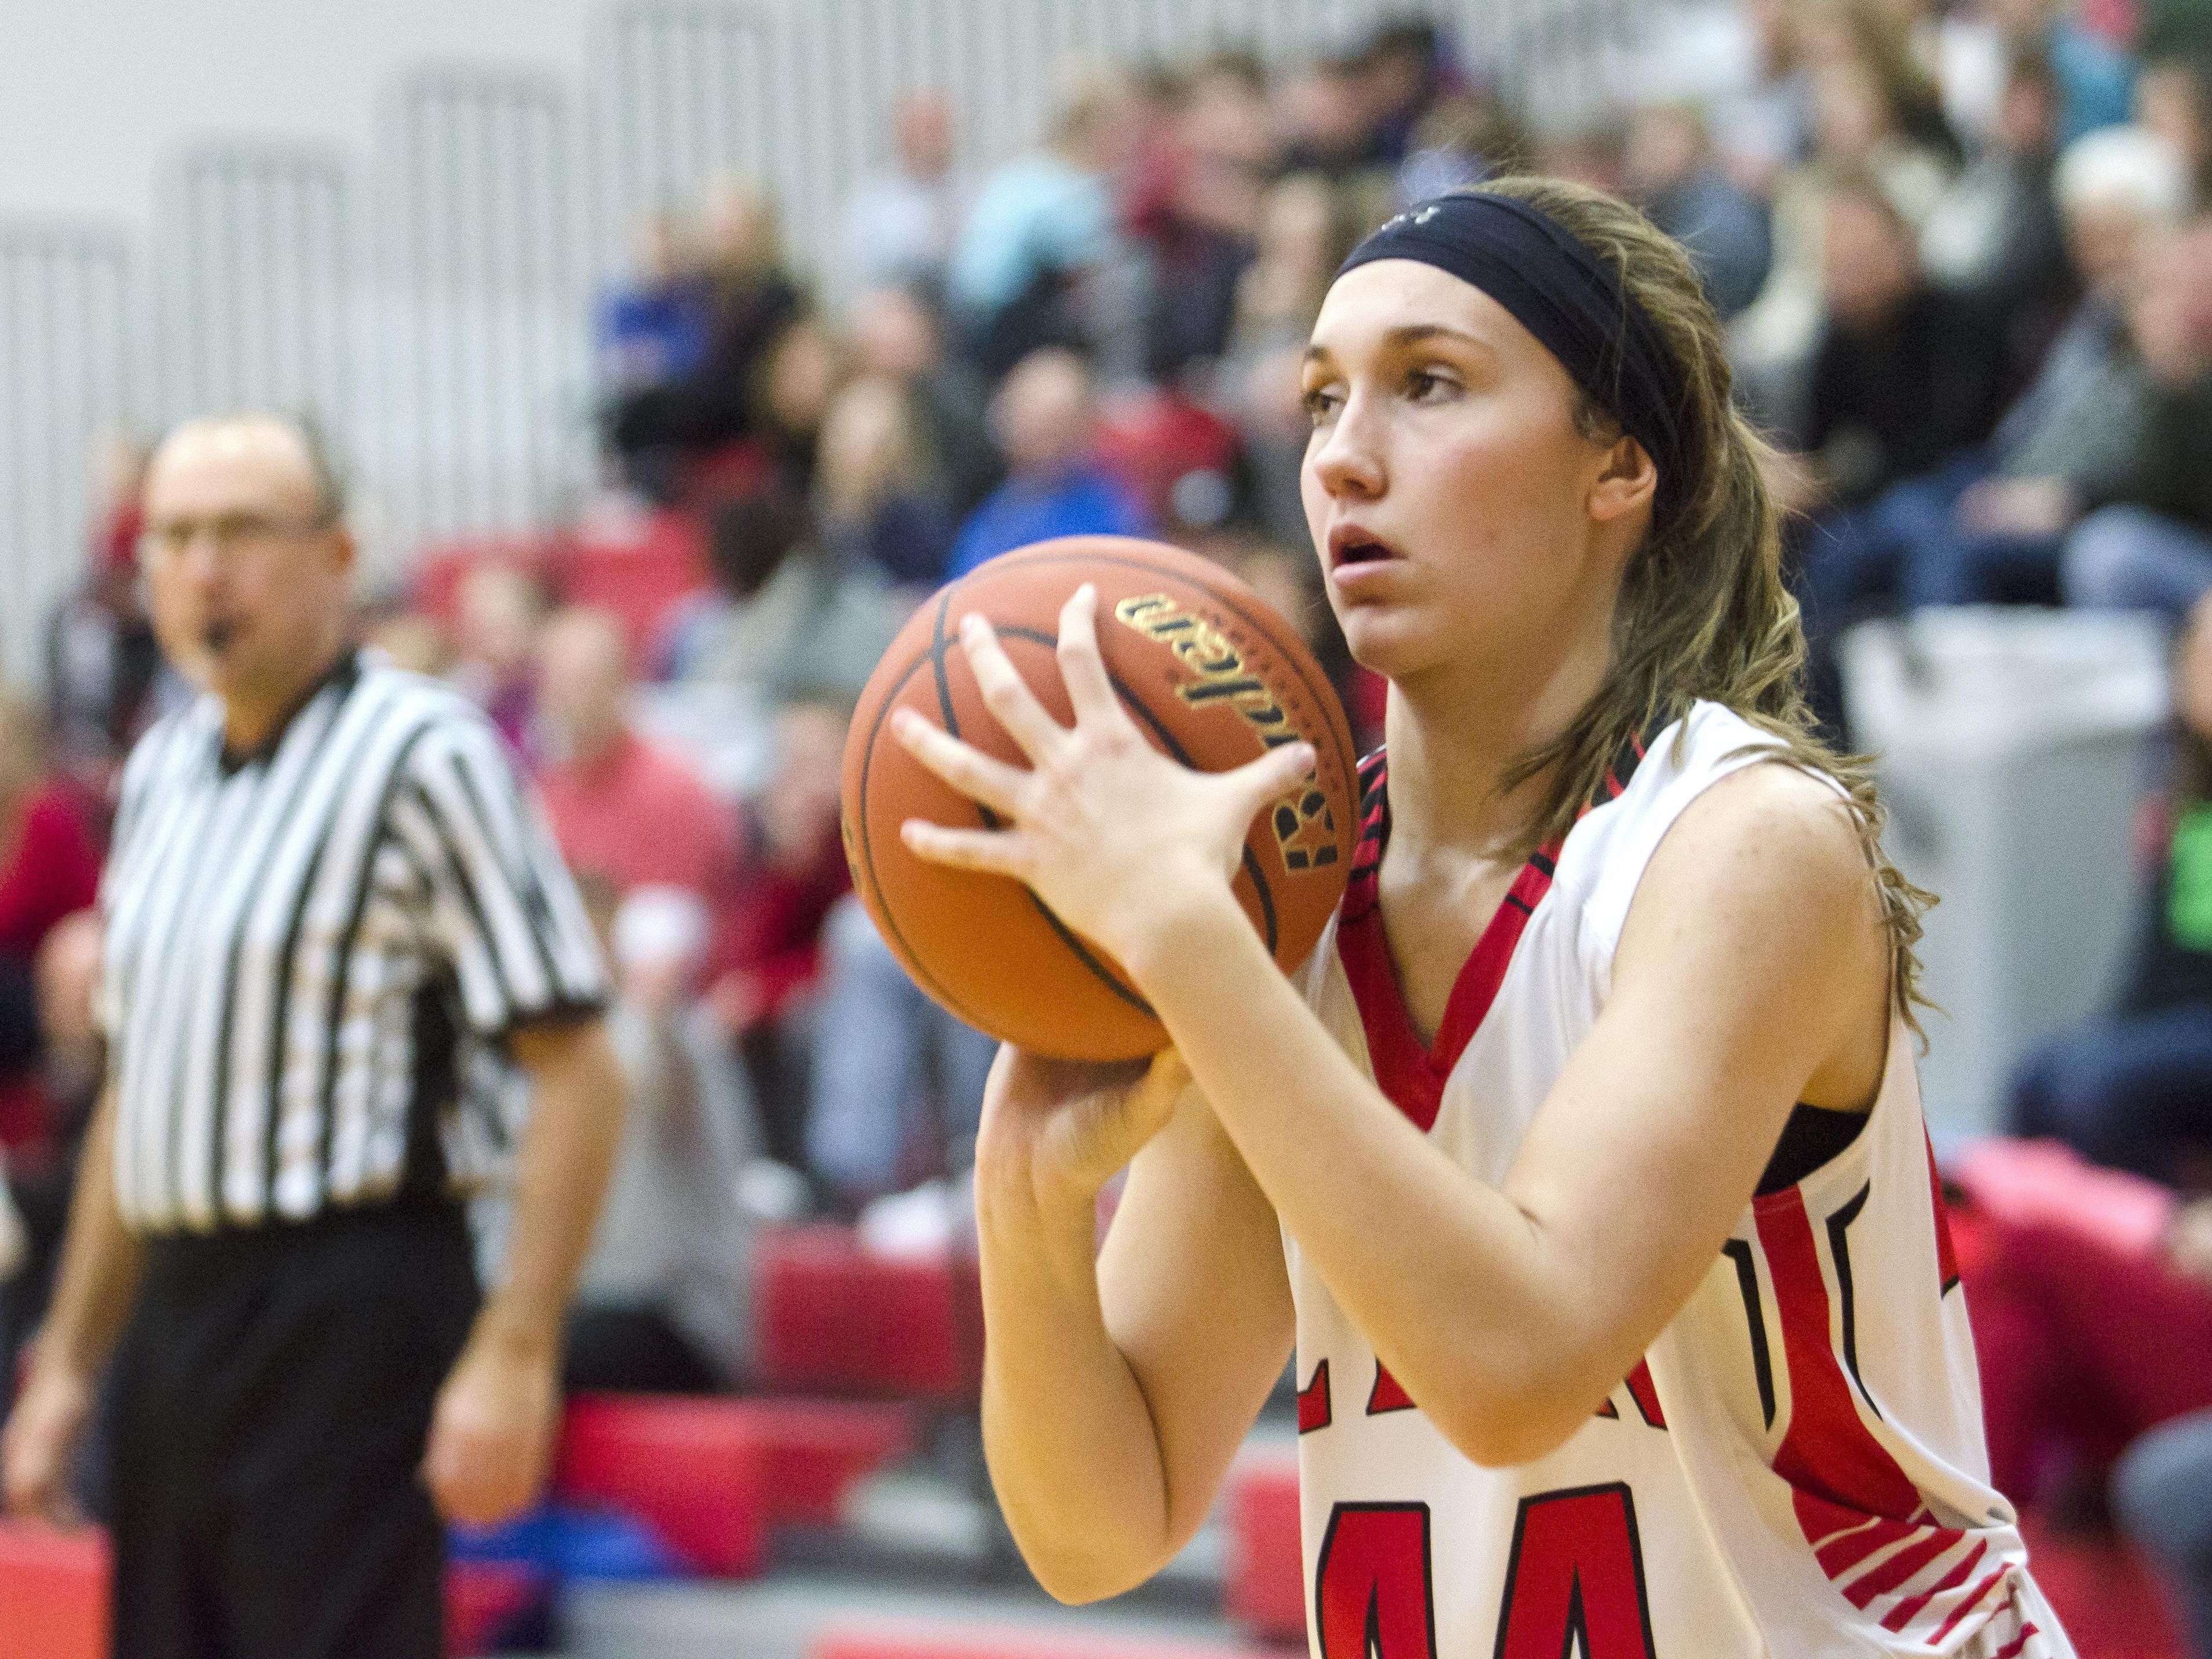 Trinity Law of Brandon Valley shoots from the perimeter Tuesday, Jan. 3, against Watertown at Brandon.